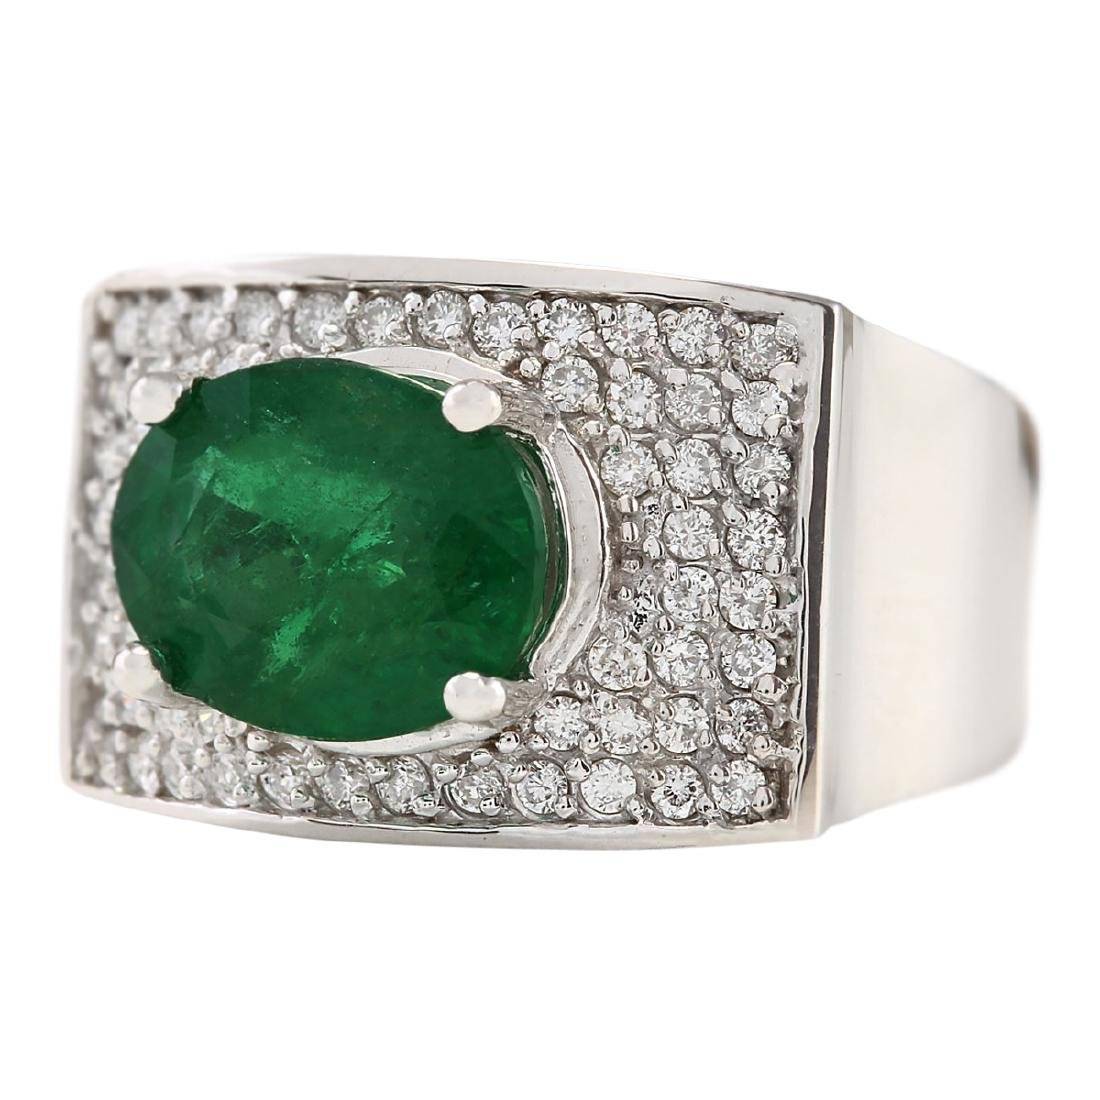 4.78 CTW Natural Emerald And Diamond Ring In 18K White - 2